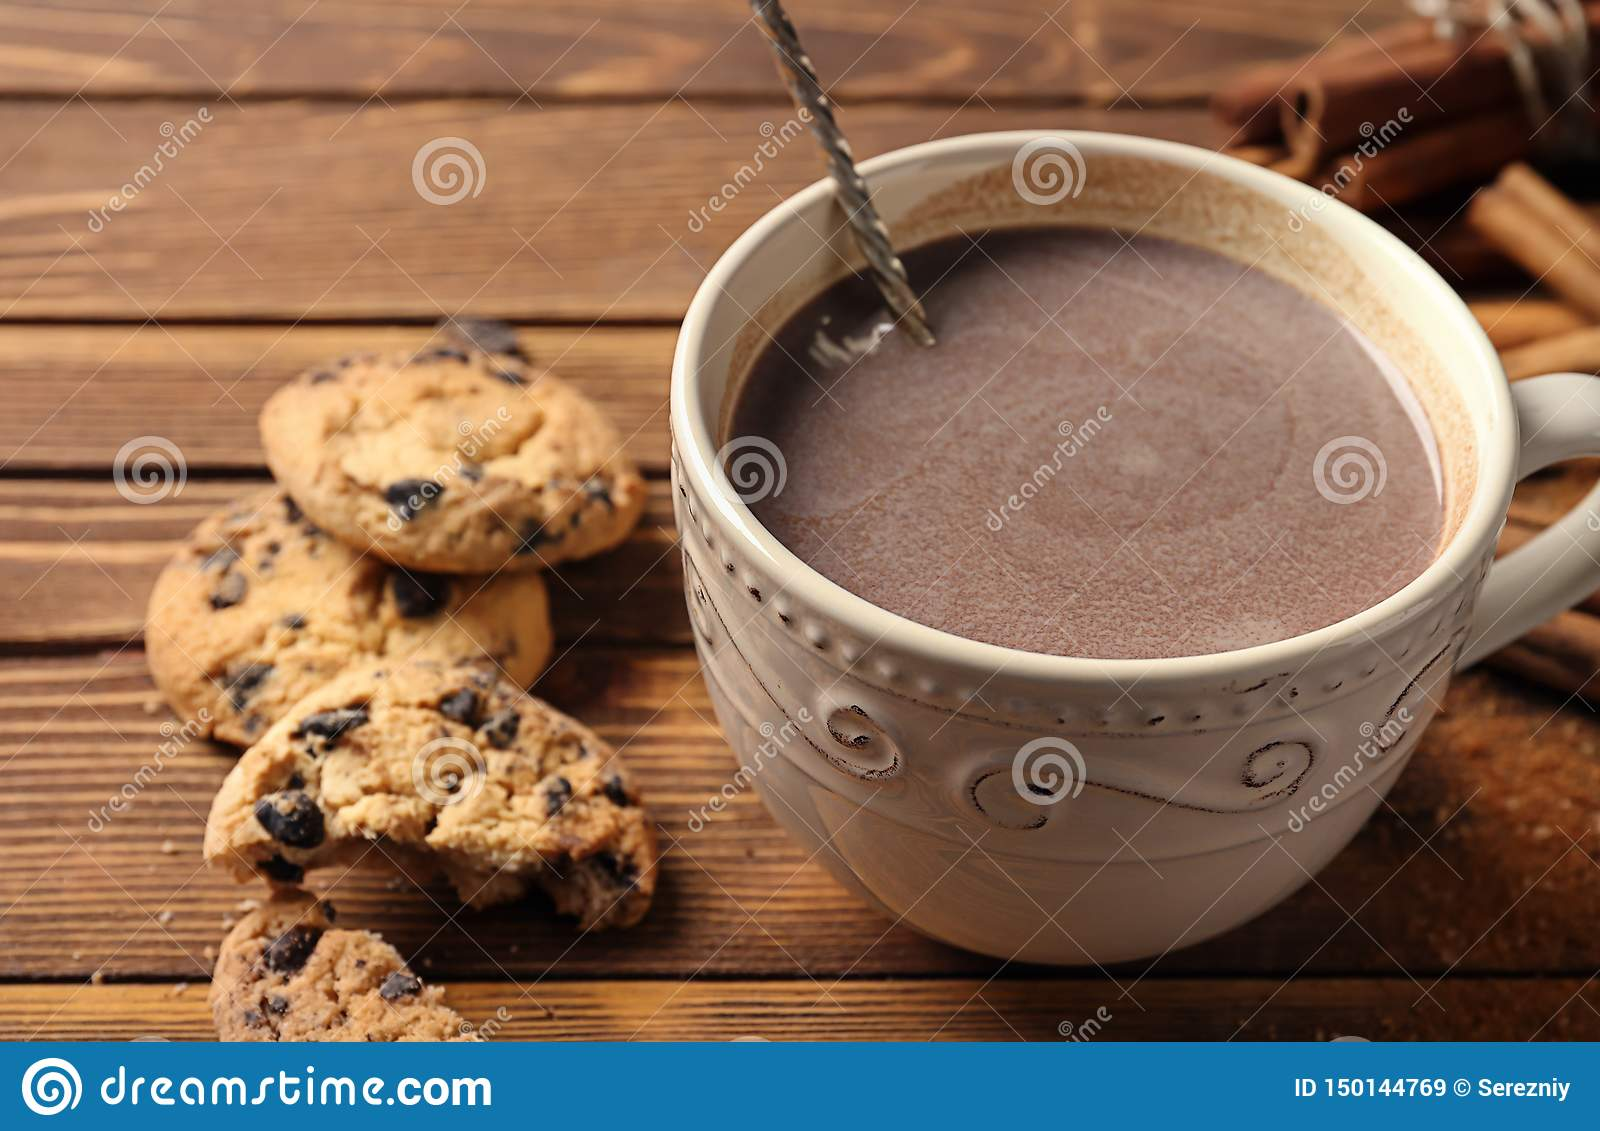 Cup Of Delicious Hot Cocoa And Cookies On Wooden Background Stock Image -  Image of color, delicious: 150144769